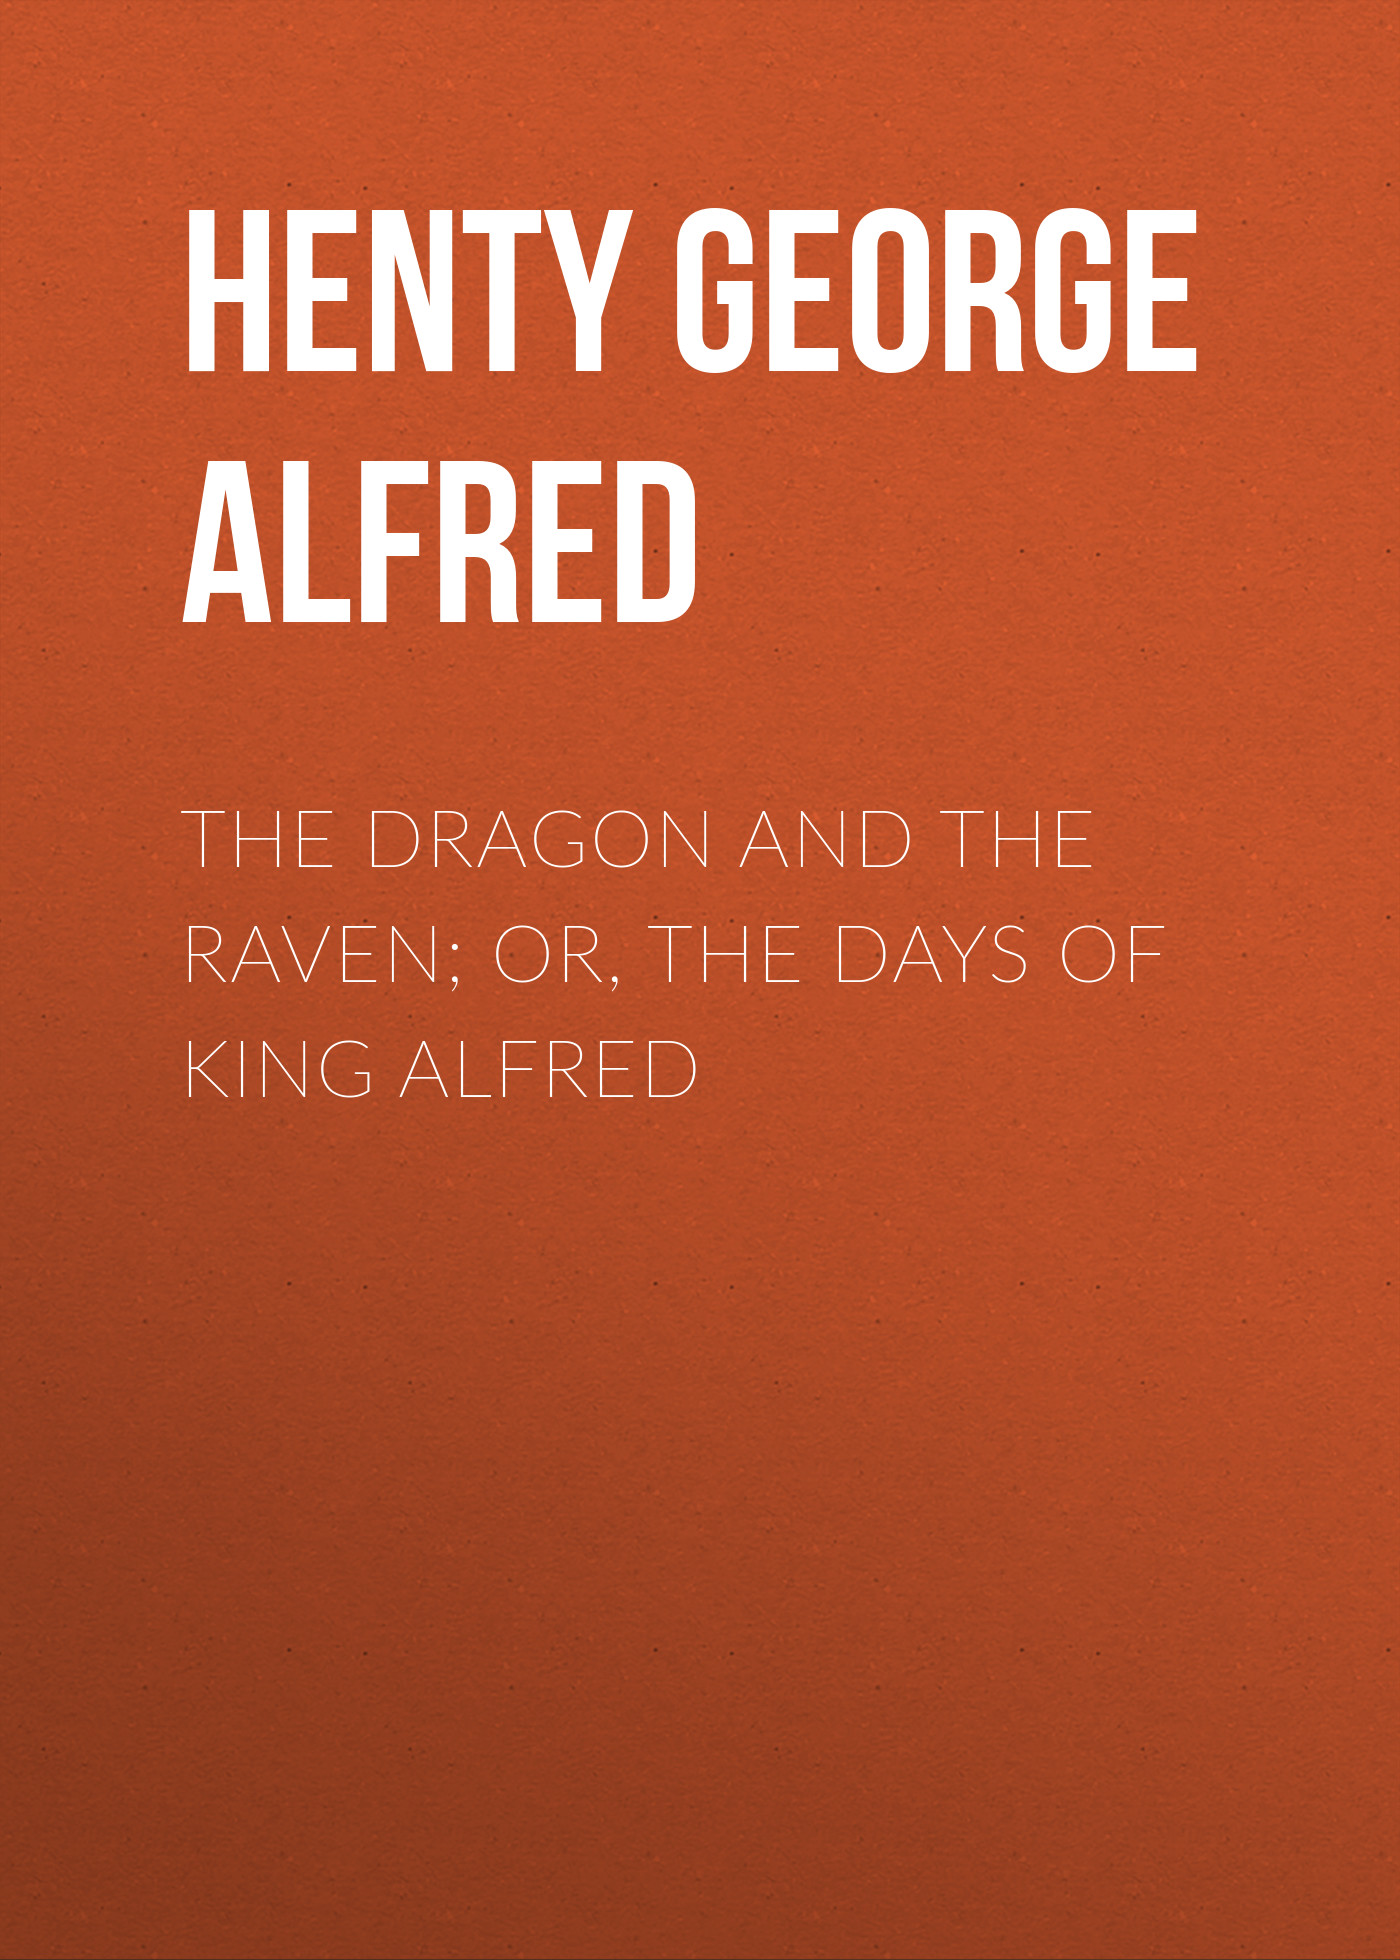 лучшая цена Henty George Alfred The Dragon and the Raven; Or, The Days of King Alfred